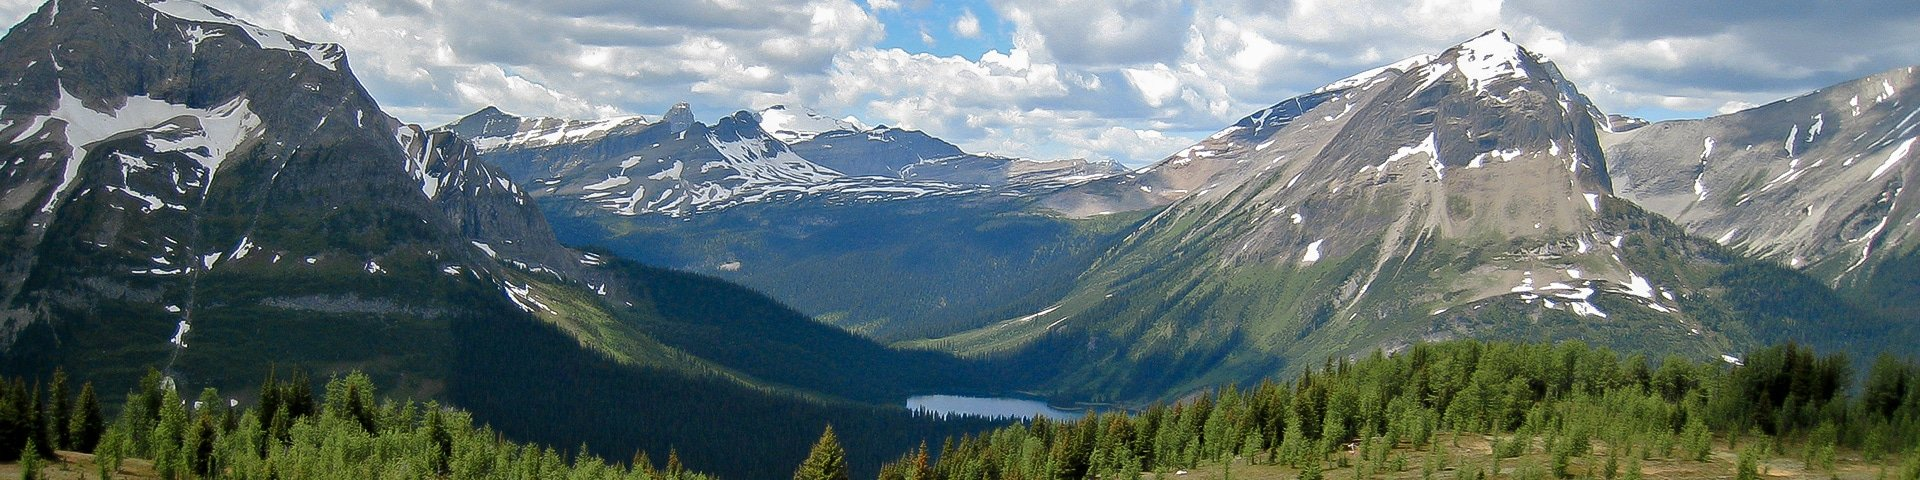 Panorama from the Burstall Pass hike from Smith-Dorrien Trail in Kananaskis near Canmore